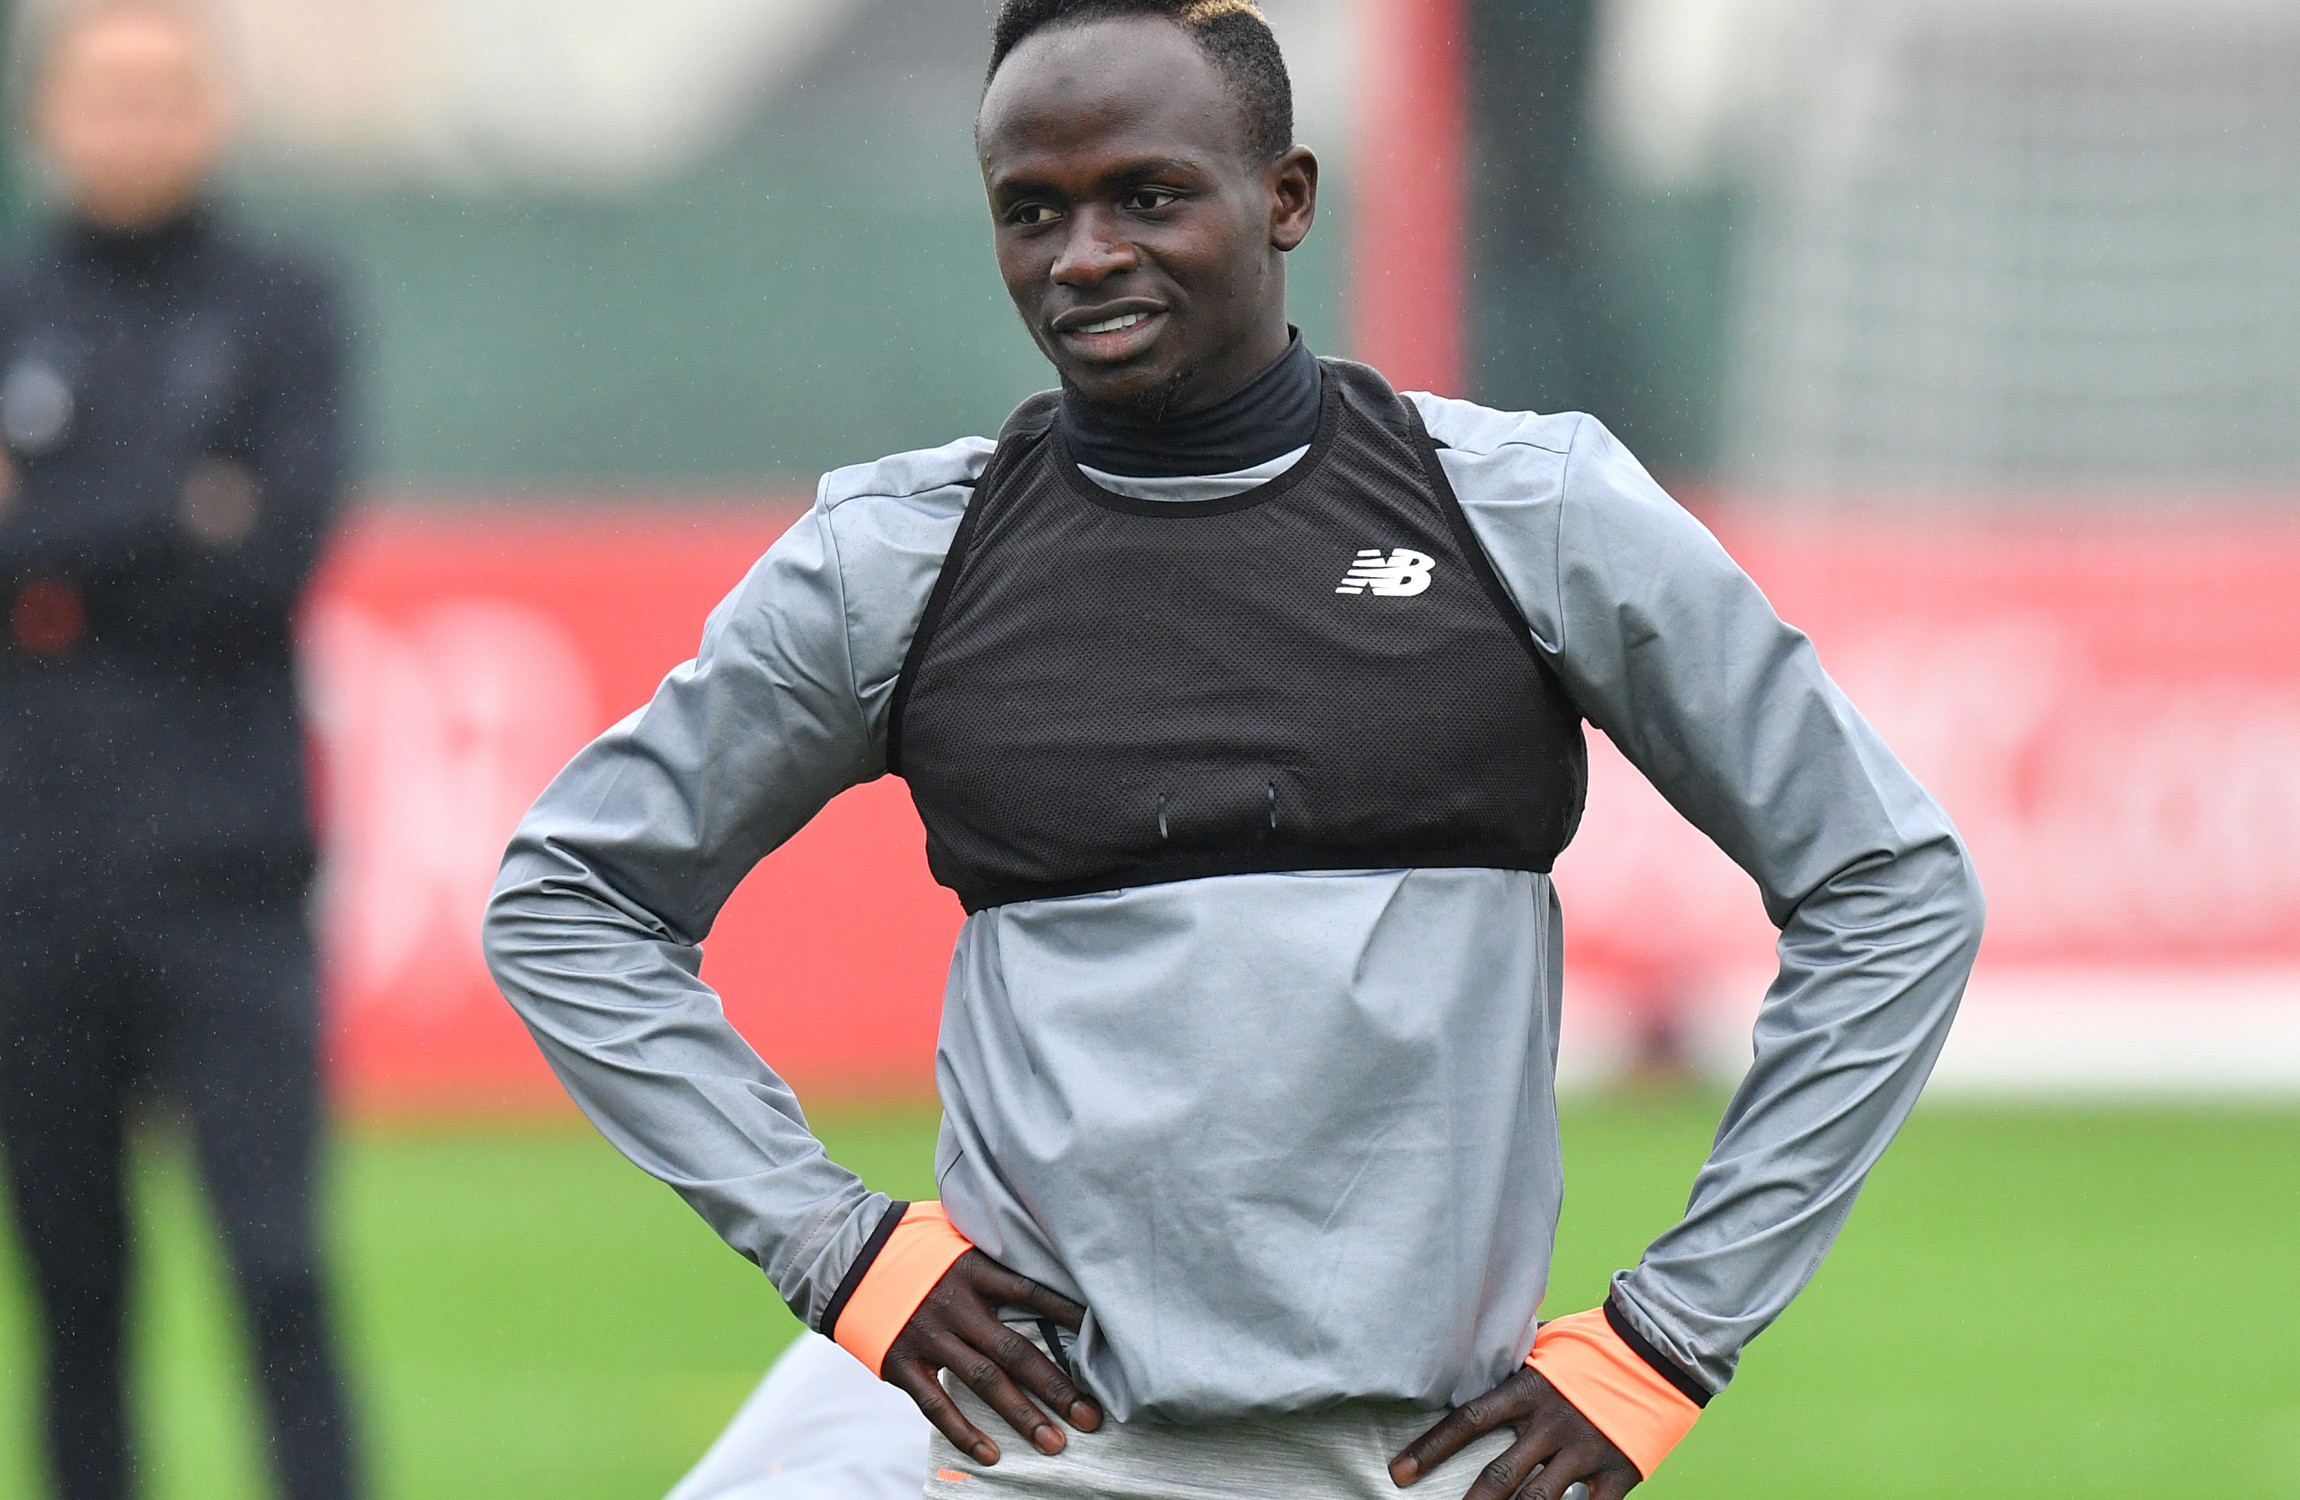 Sadio Mane could make Liverpool return at West Ham on Saturday